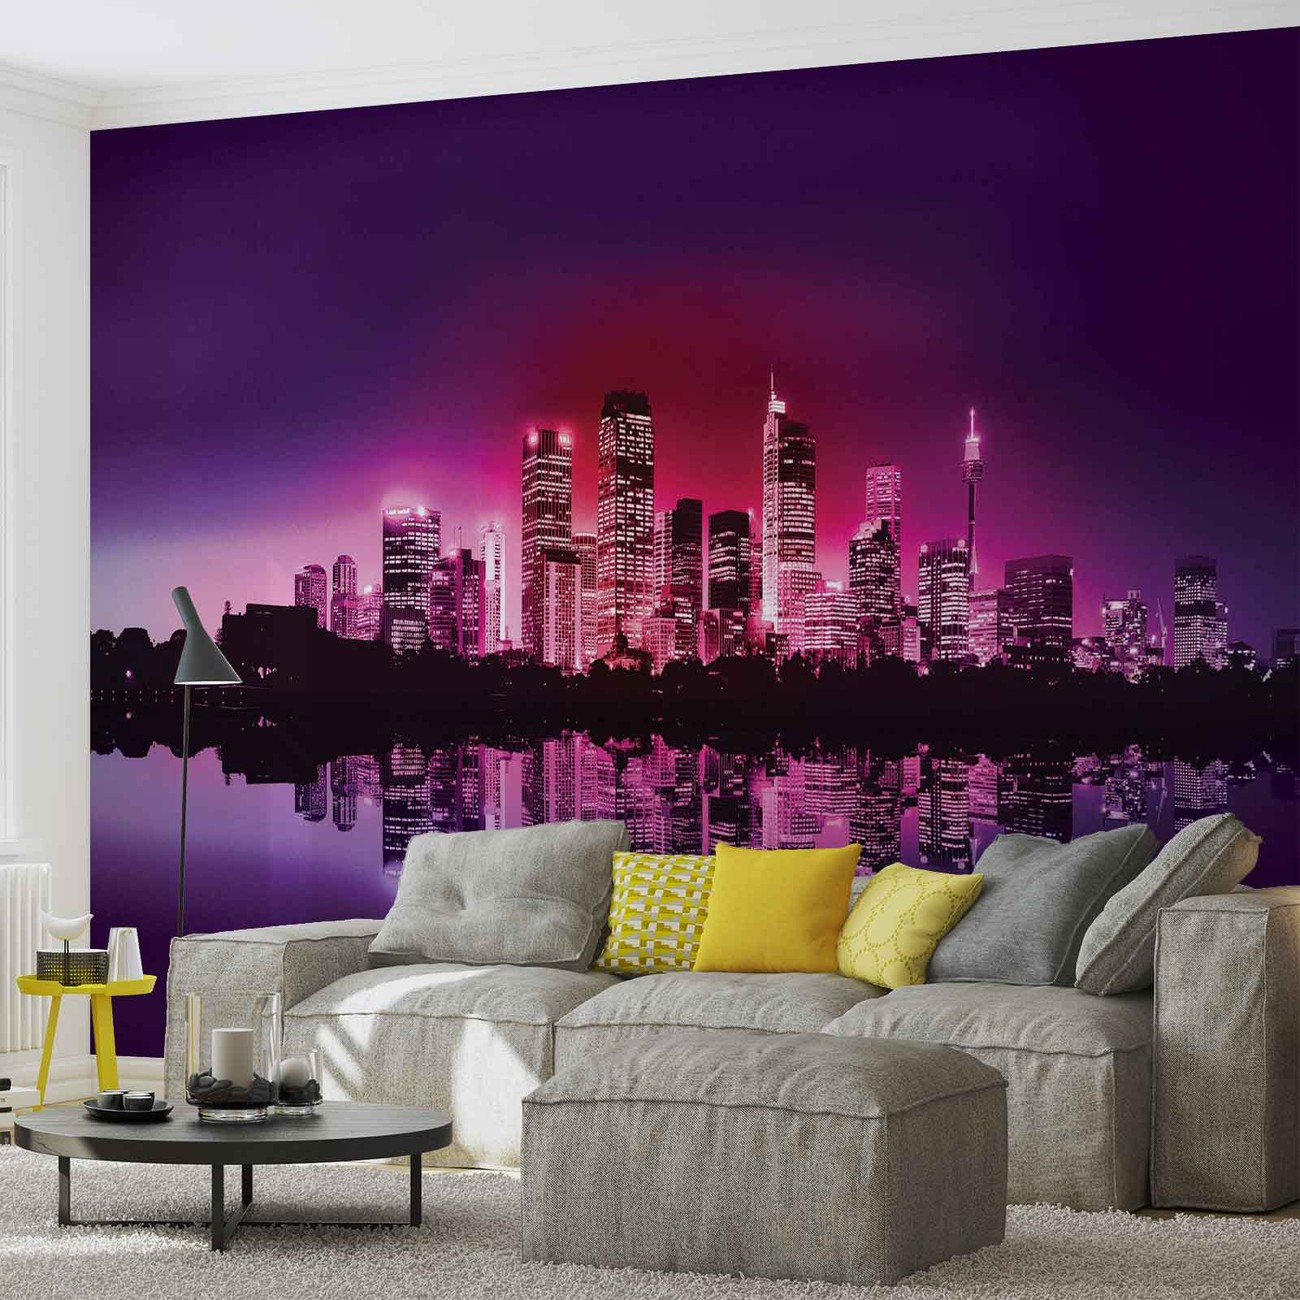 City new york skyline wall paper mural buy at for Cityscape murals photo wall mural